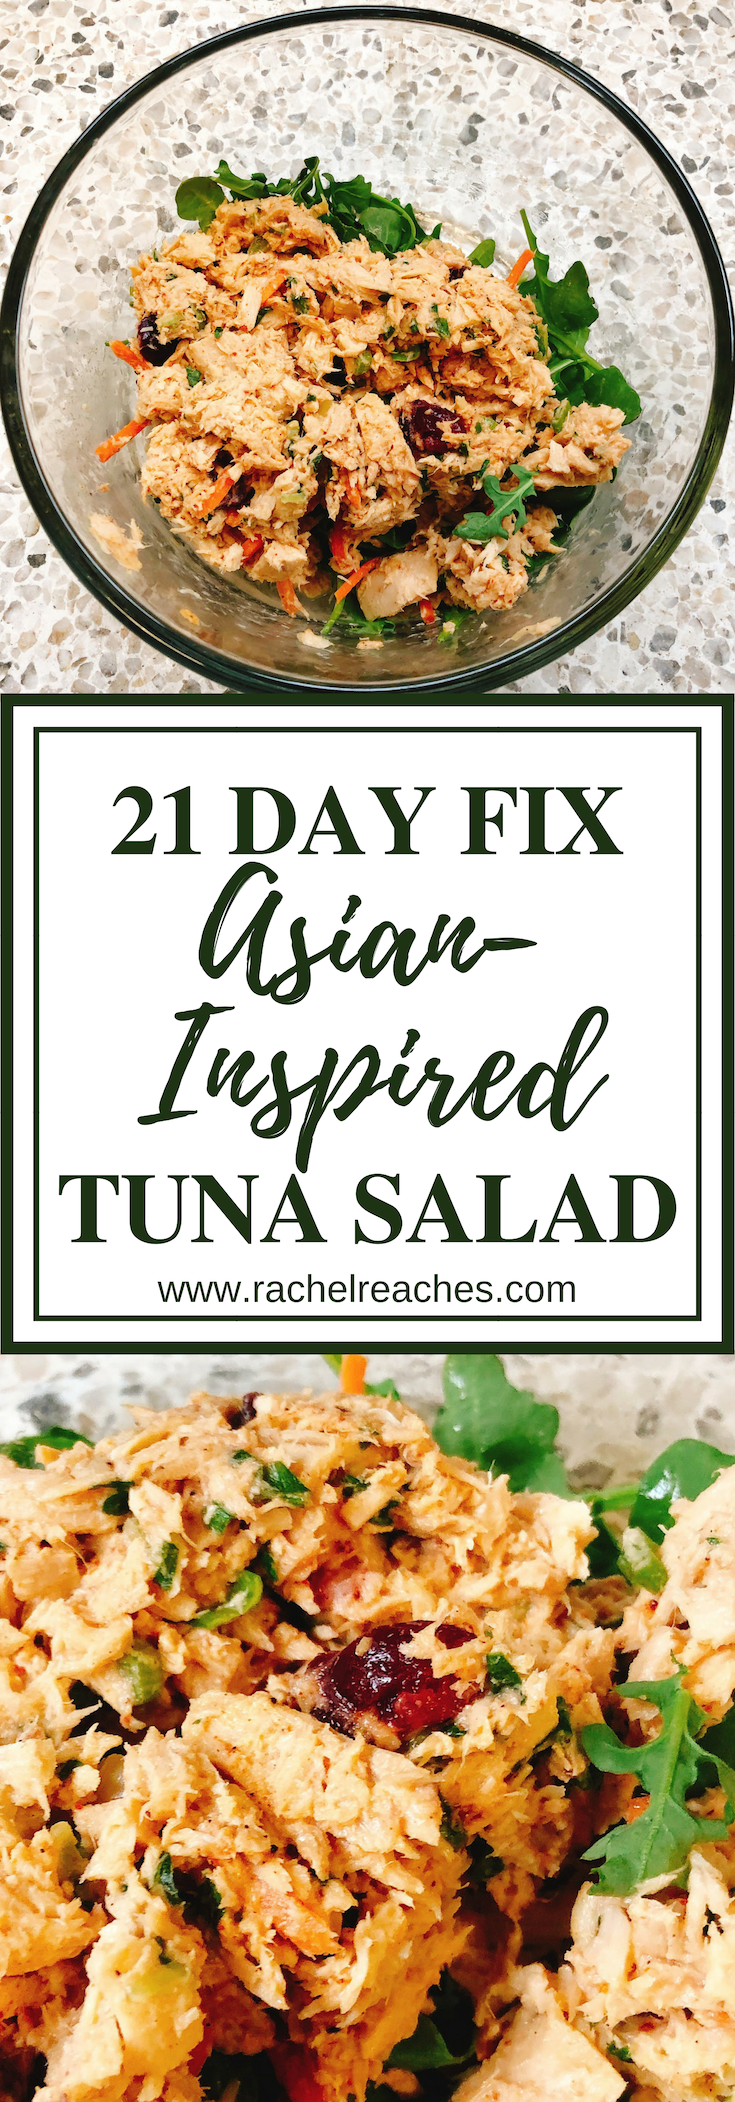 Asian-Inspired Tuna Salad Pin - 21 Day Fix.png